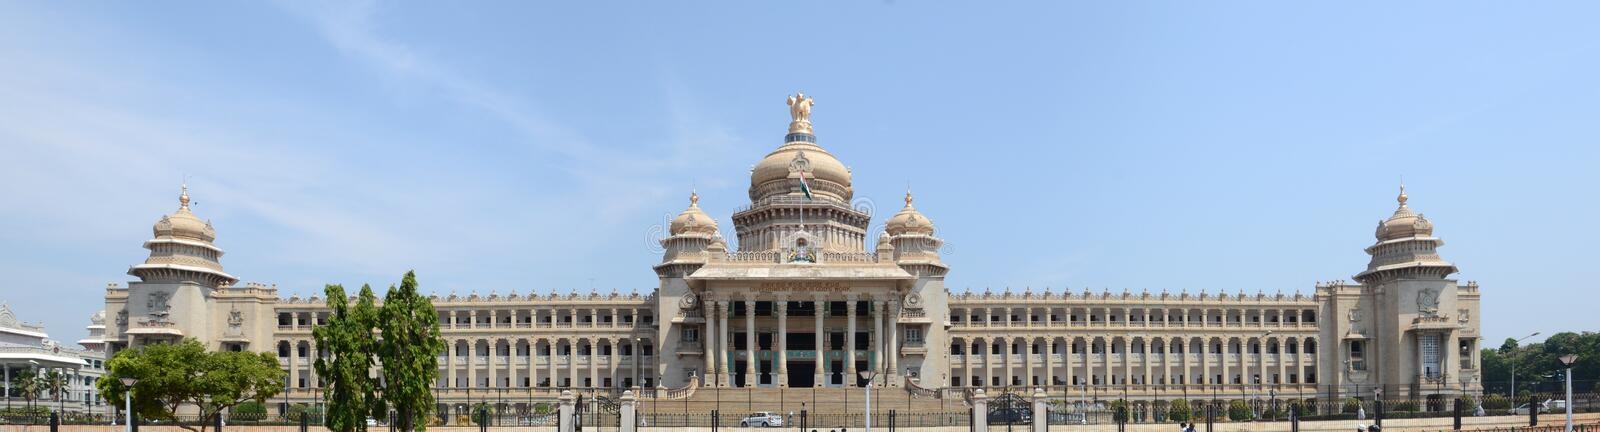 Vidhana Soudha royalty free stock images